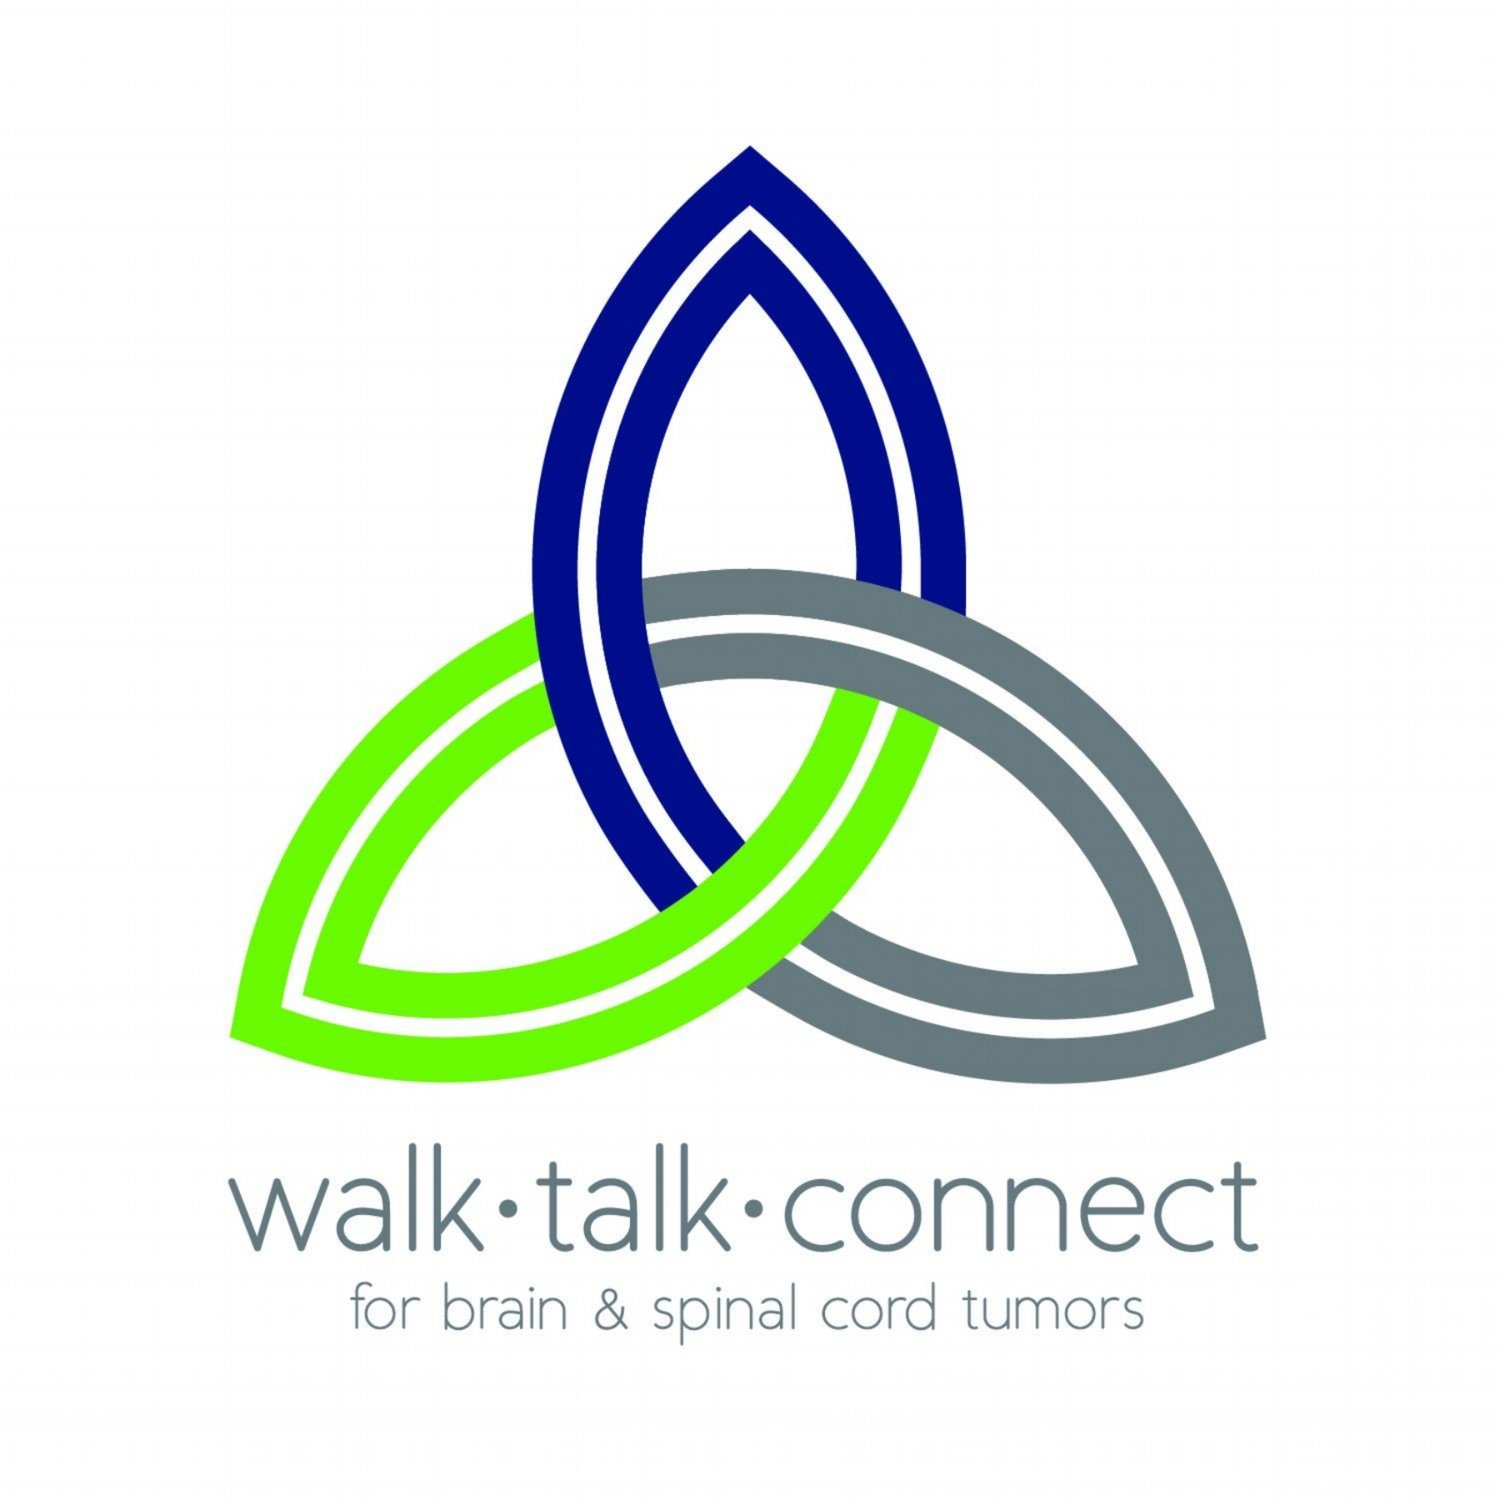 walktalkconnect